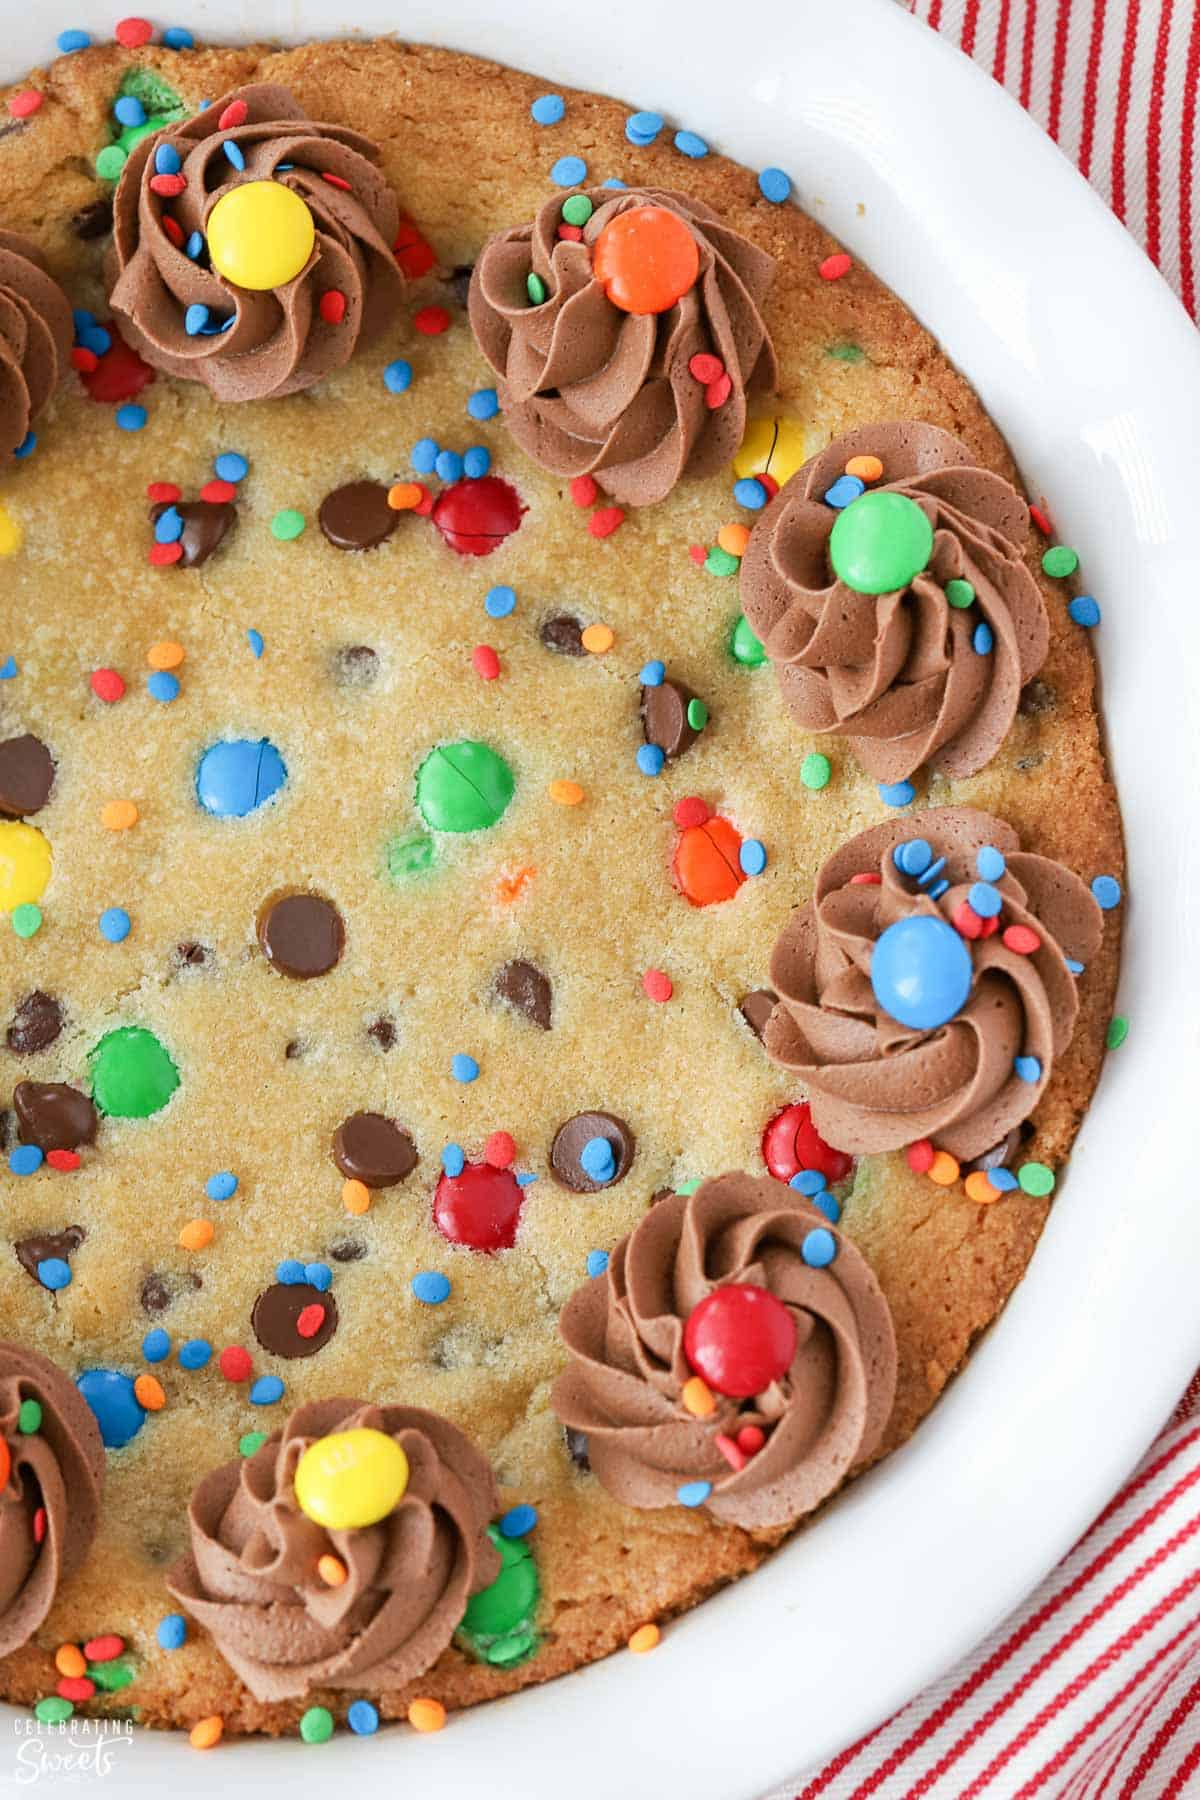 Cookie cake decorated with chocolate frosting and M&M's